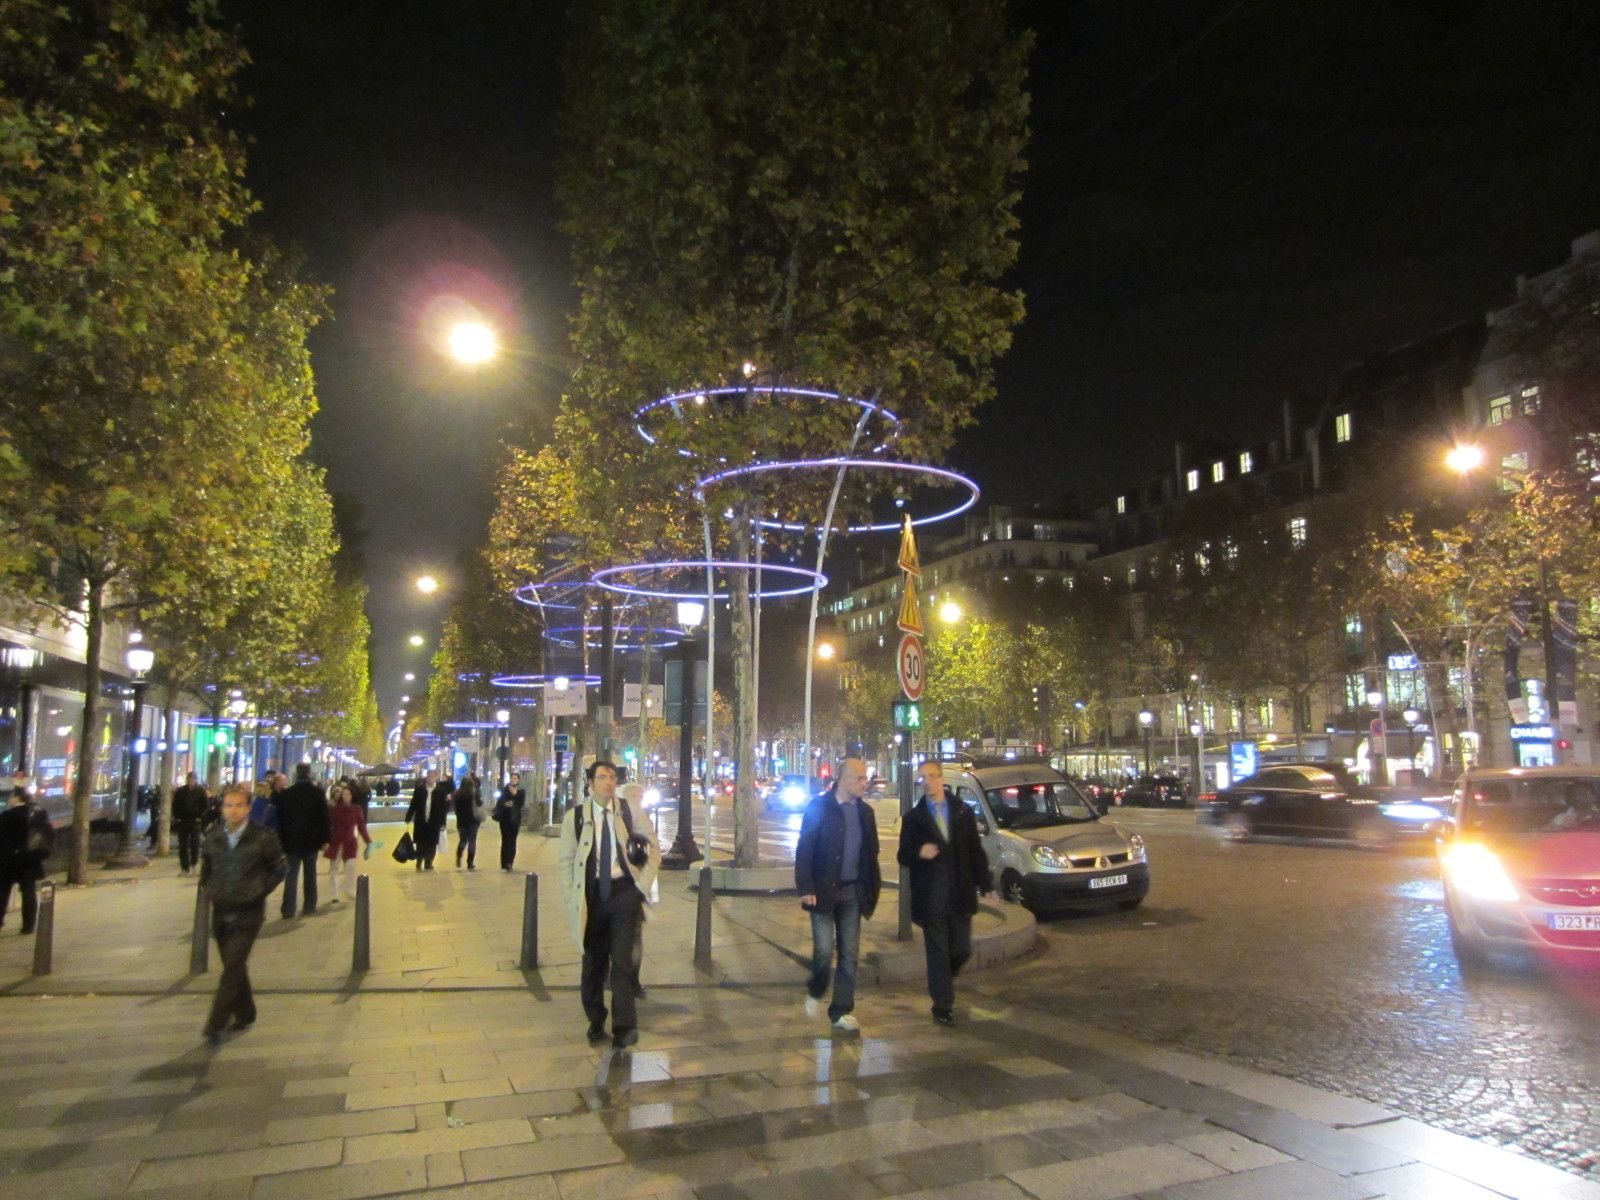 #8B7740 ImmoAlternativ€: Avenue Des Champs Elysées Illuminations 2012 5365 decorations de noel champs elysees 1600x1200 px @ aertt.com